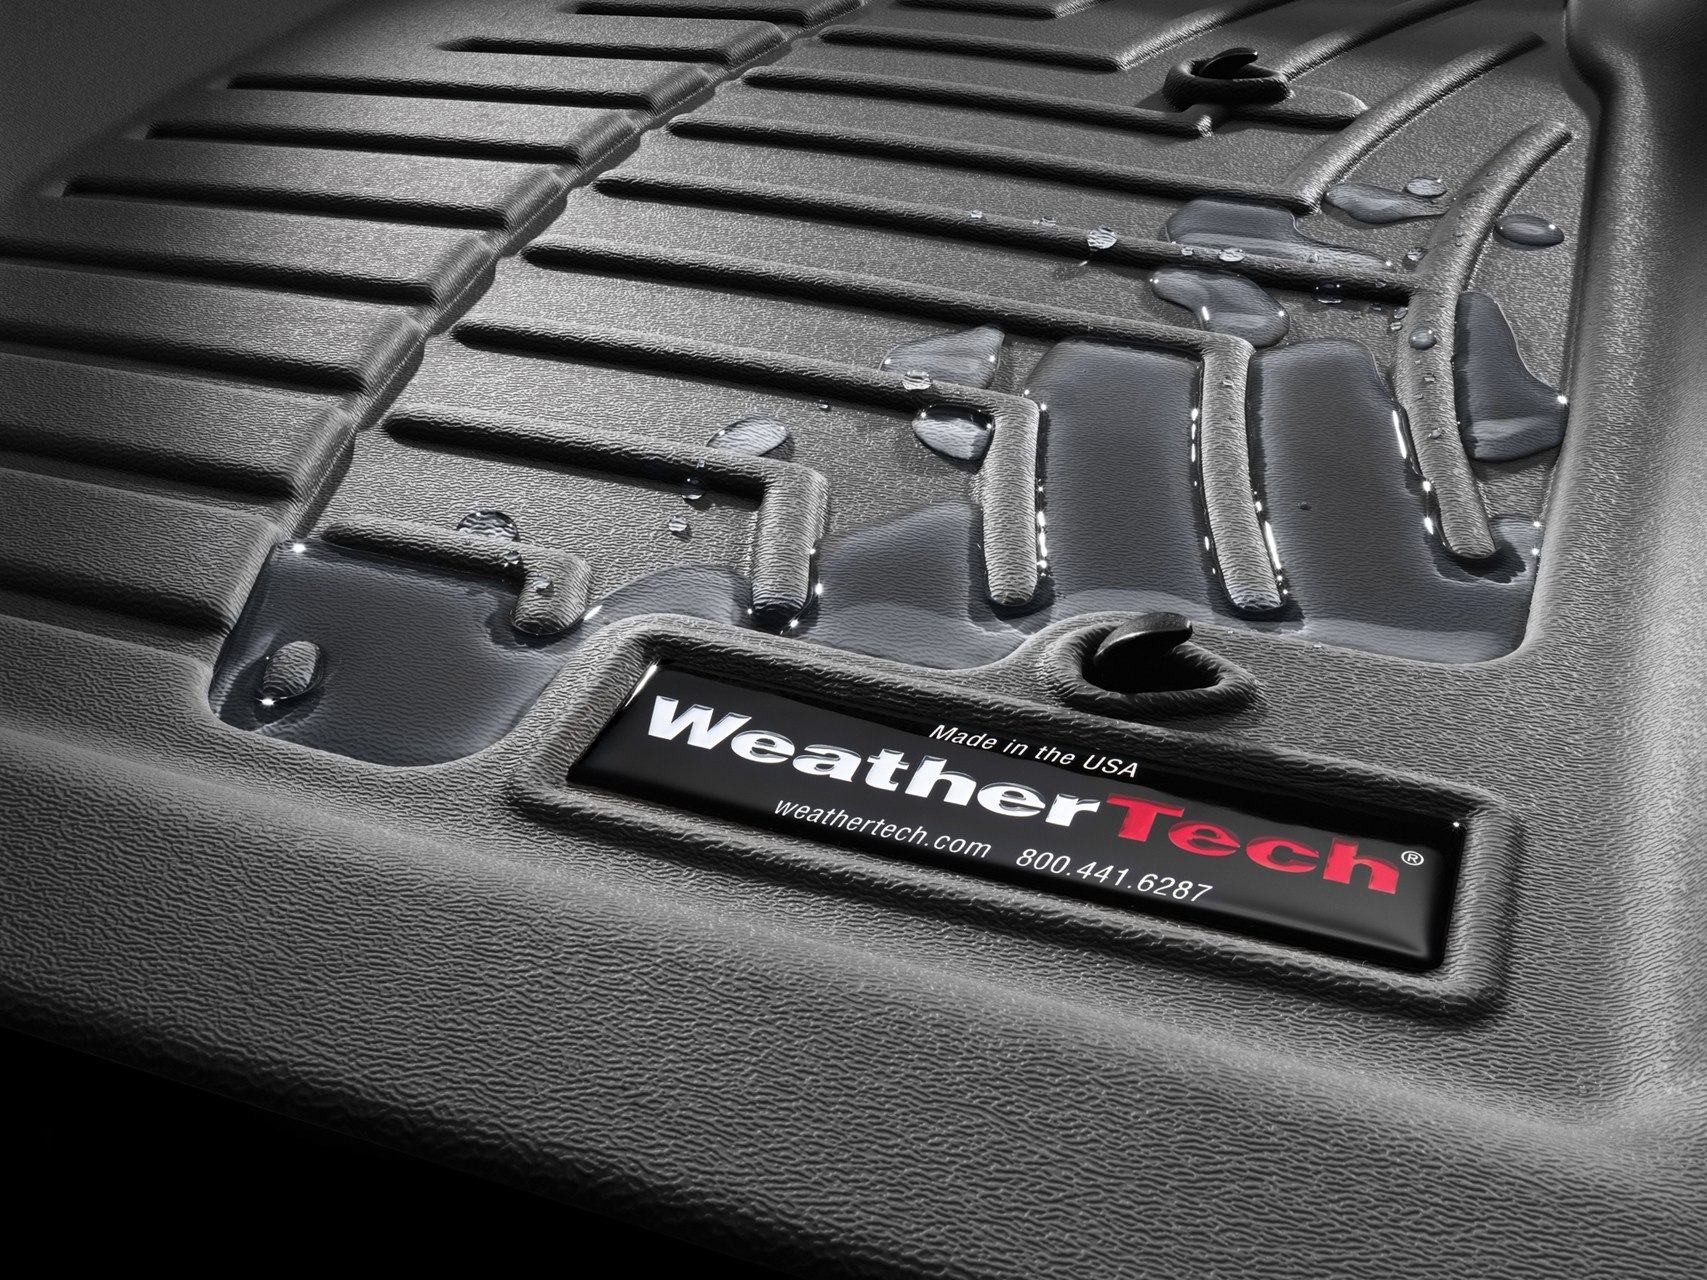 Weathertech mats for jeep grand cherokee -  Jeep Weathertech Digitalfit Grand Cherokee Floor Mats Black 2010 2005 Filter Sale